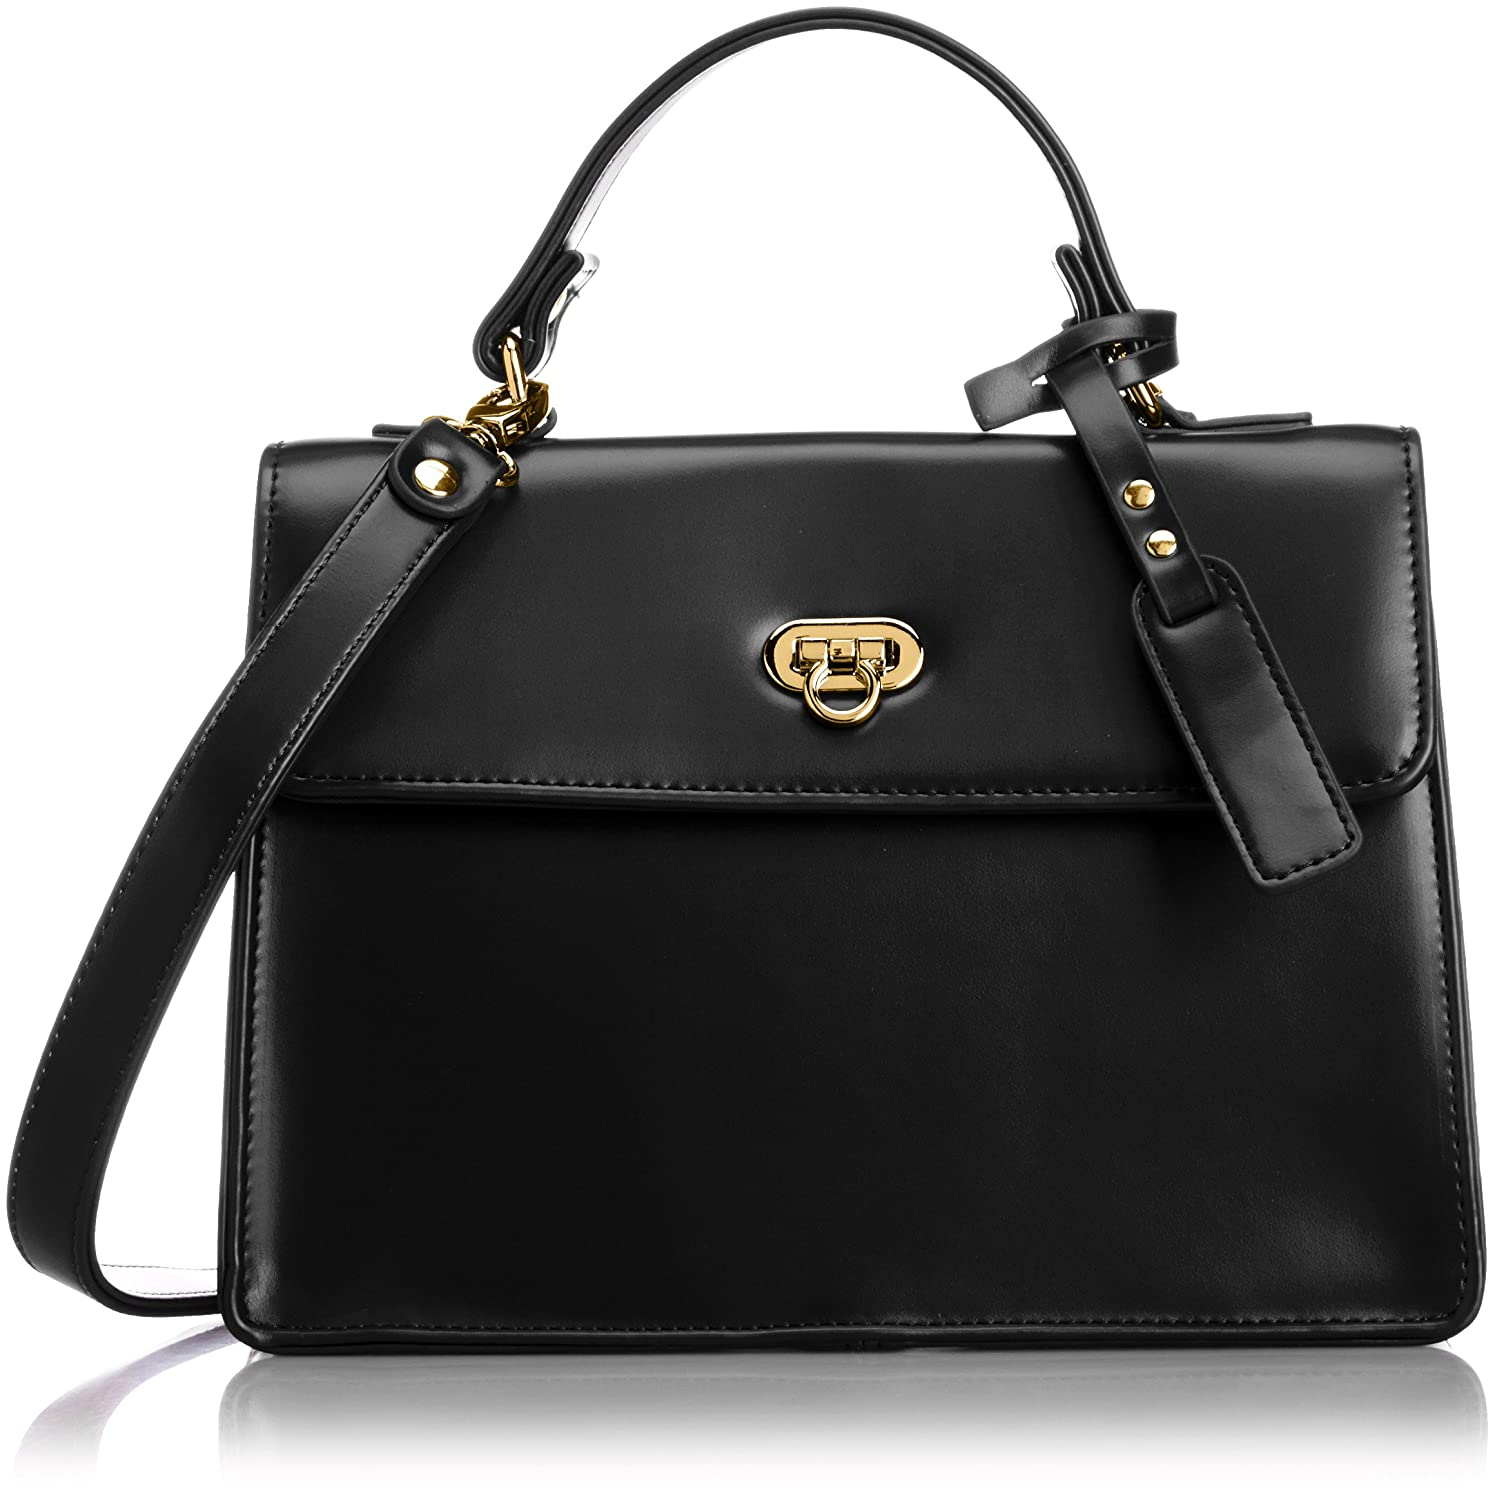 Amazon.co.jp: [リリーブラウン] Lily Brown 2way台形ショルダーBAG LWGB151302 9 (BLK): シューズ&バッグ:通販